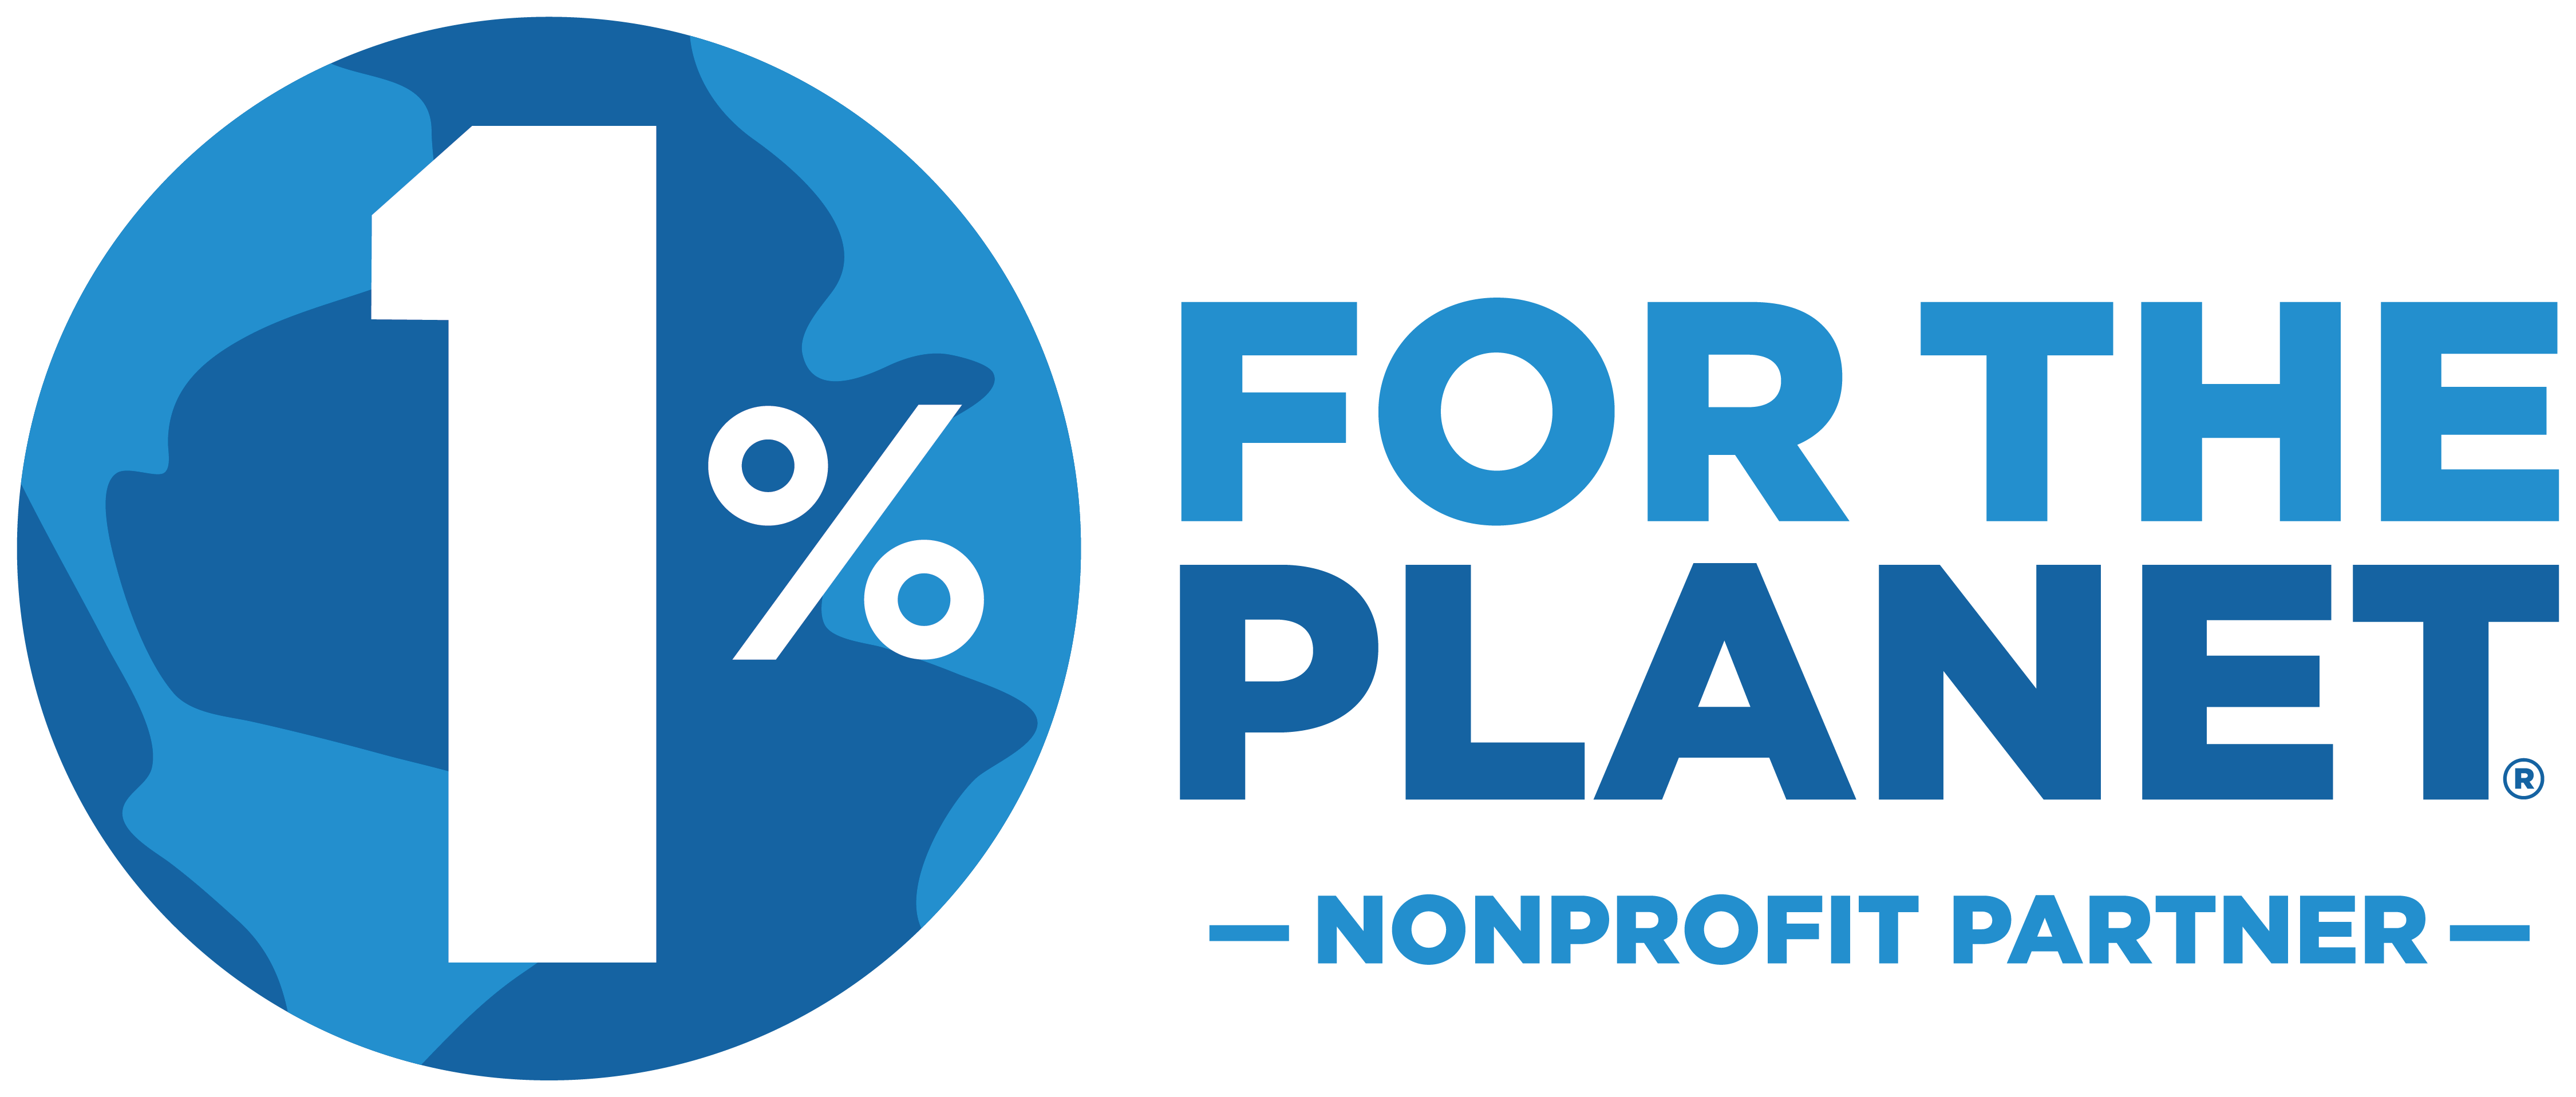 1ftp NonprofitPartner Horizontal FullColor